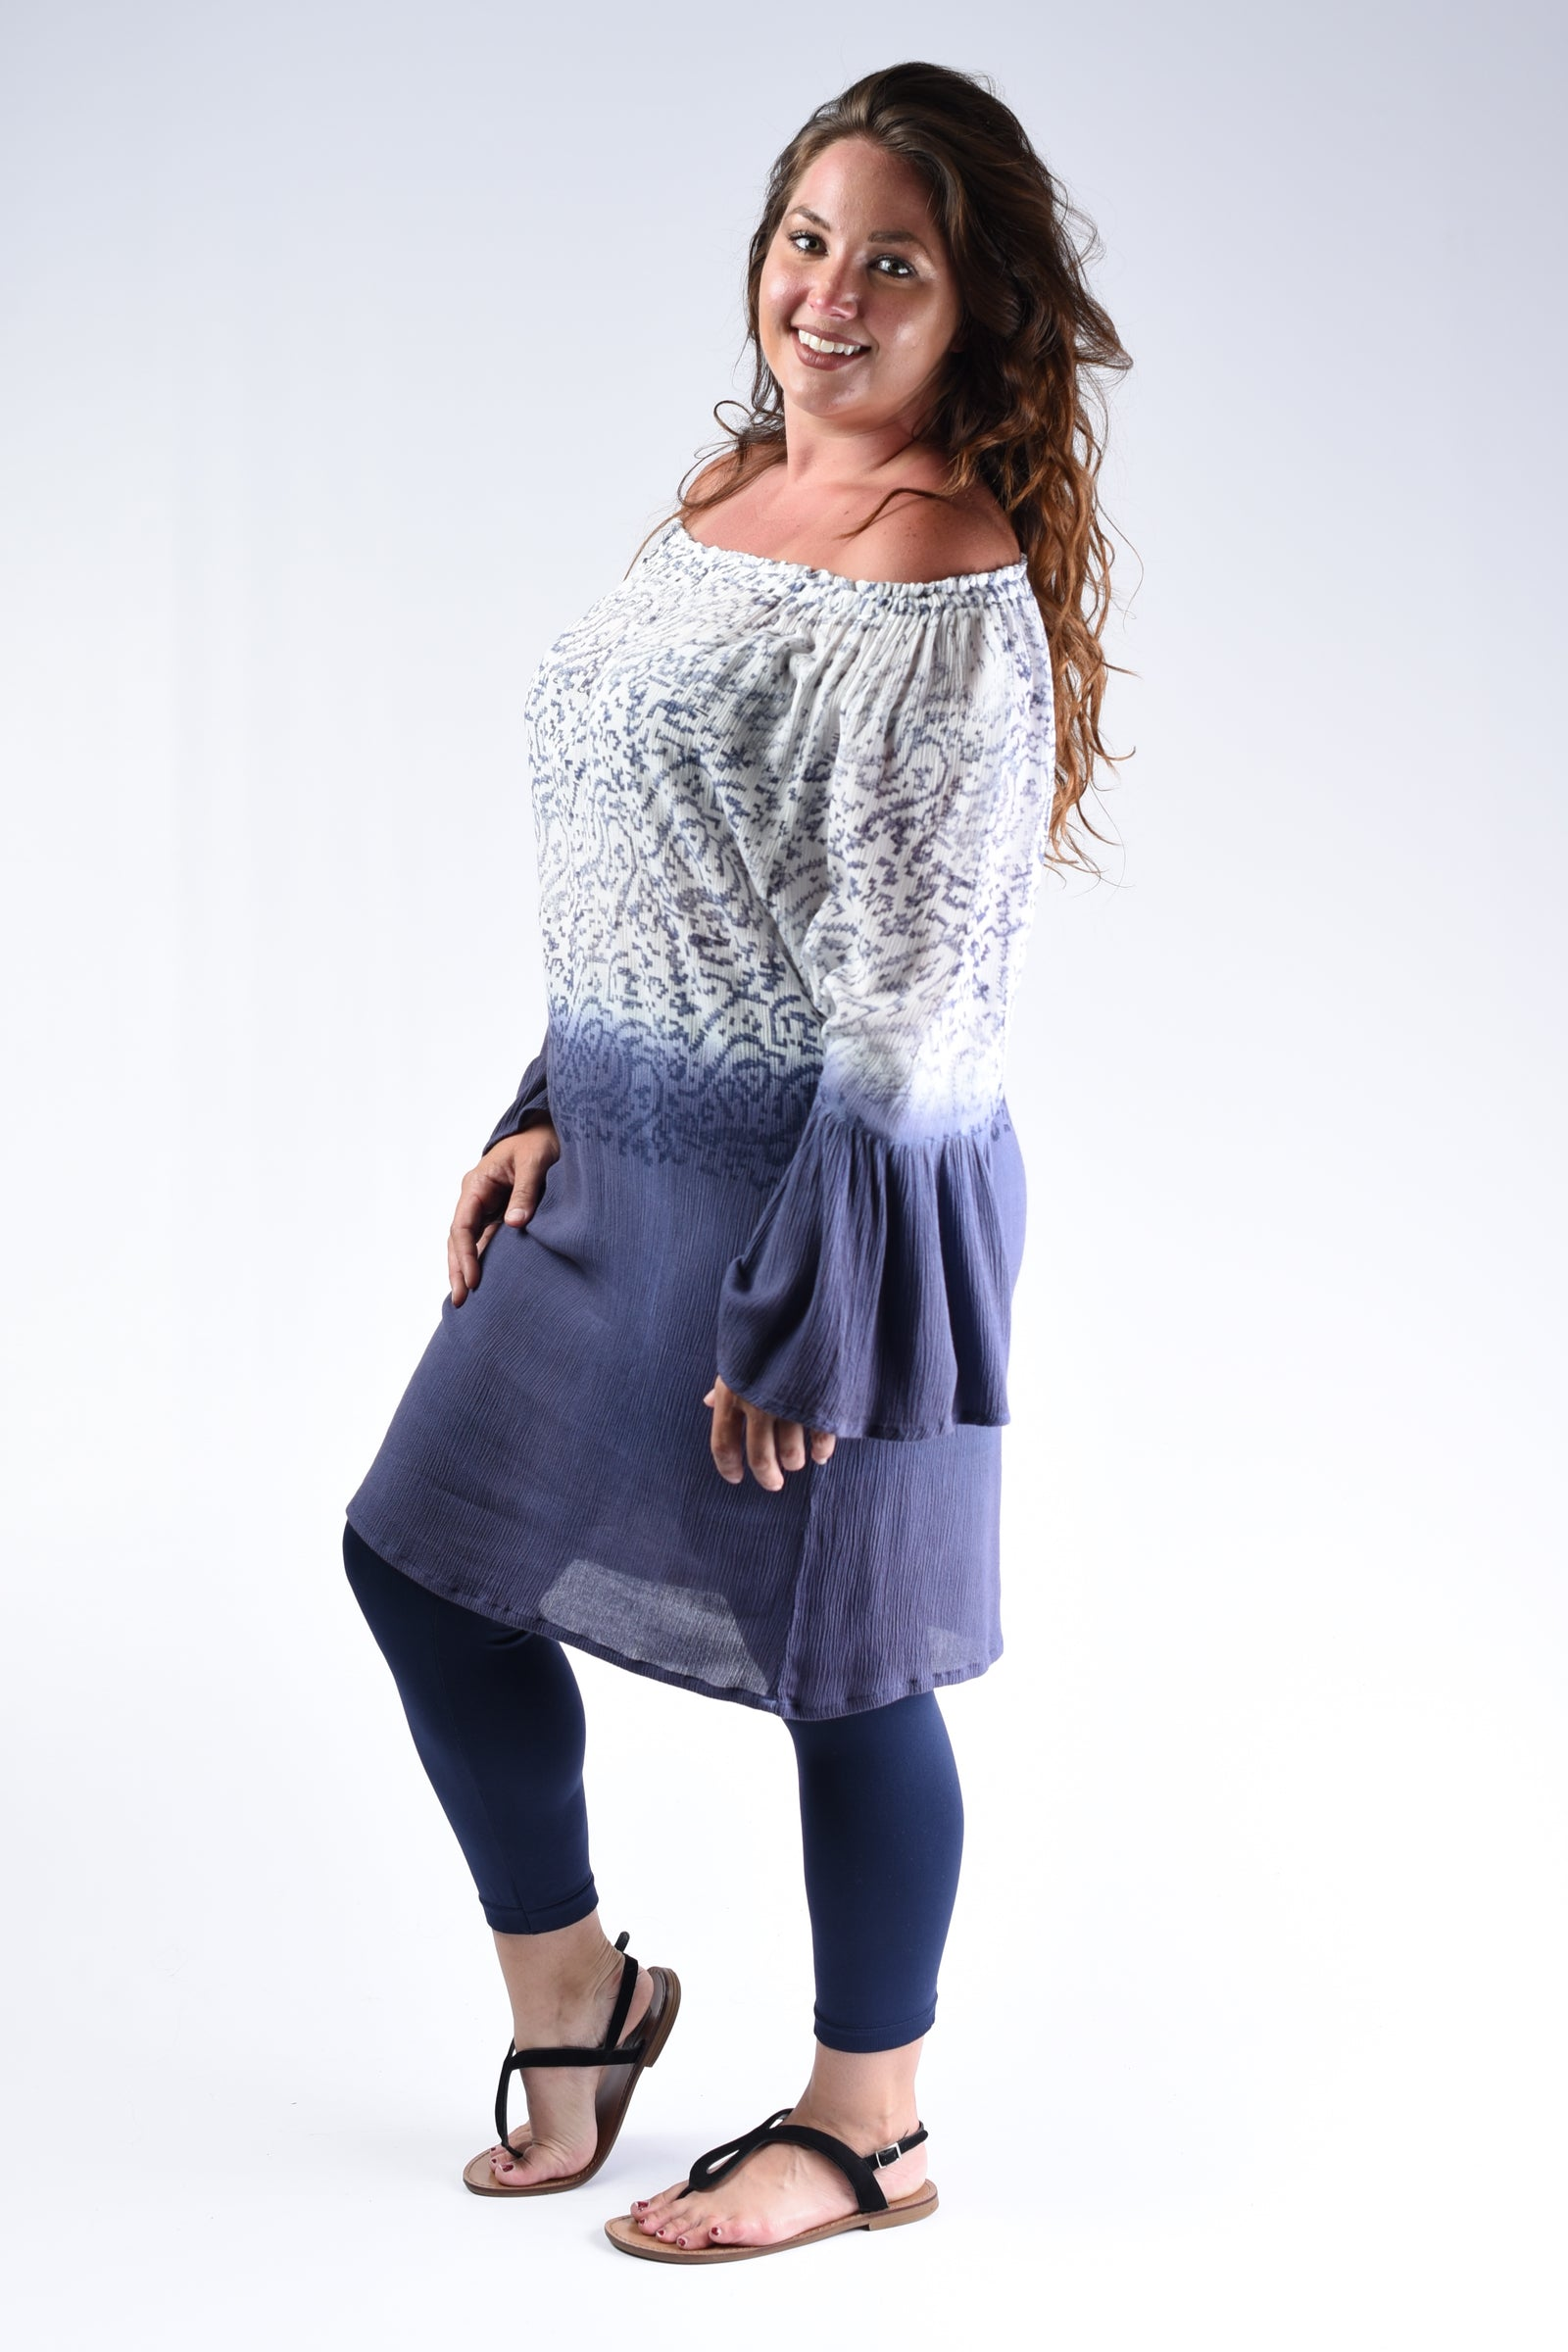 Navy & White Tunic Top - www.mycurvystore.com - Curvy Boutique - Plus Size